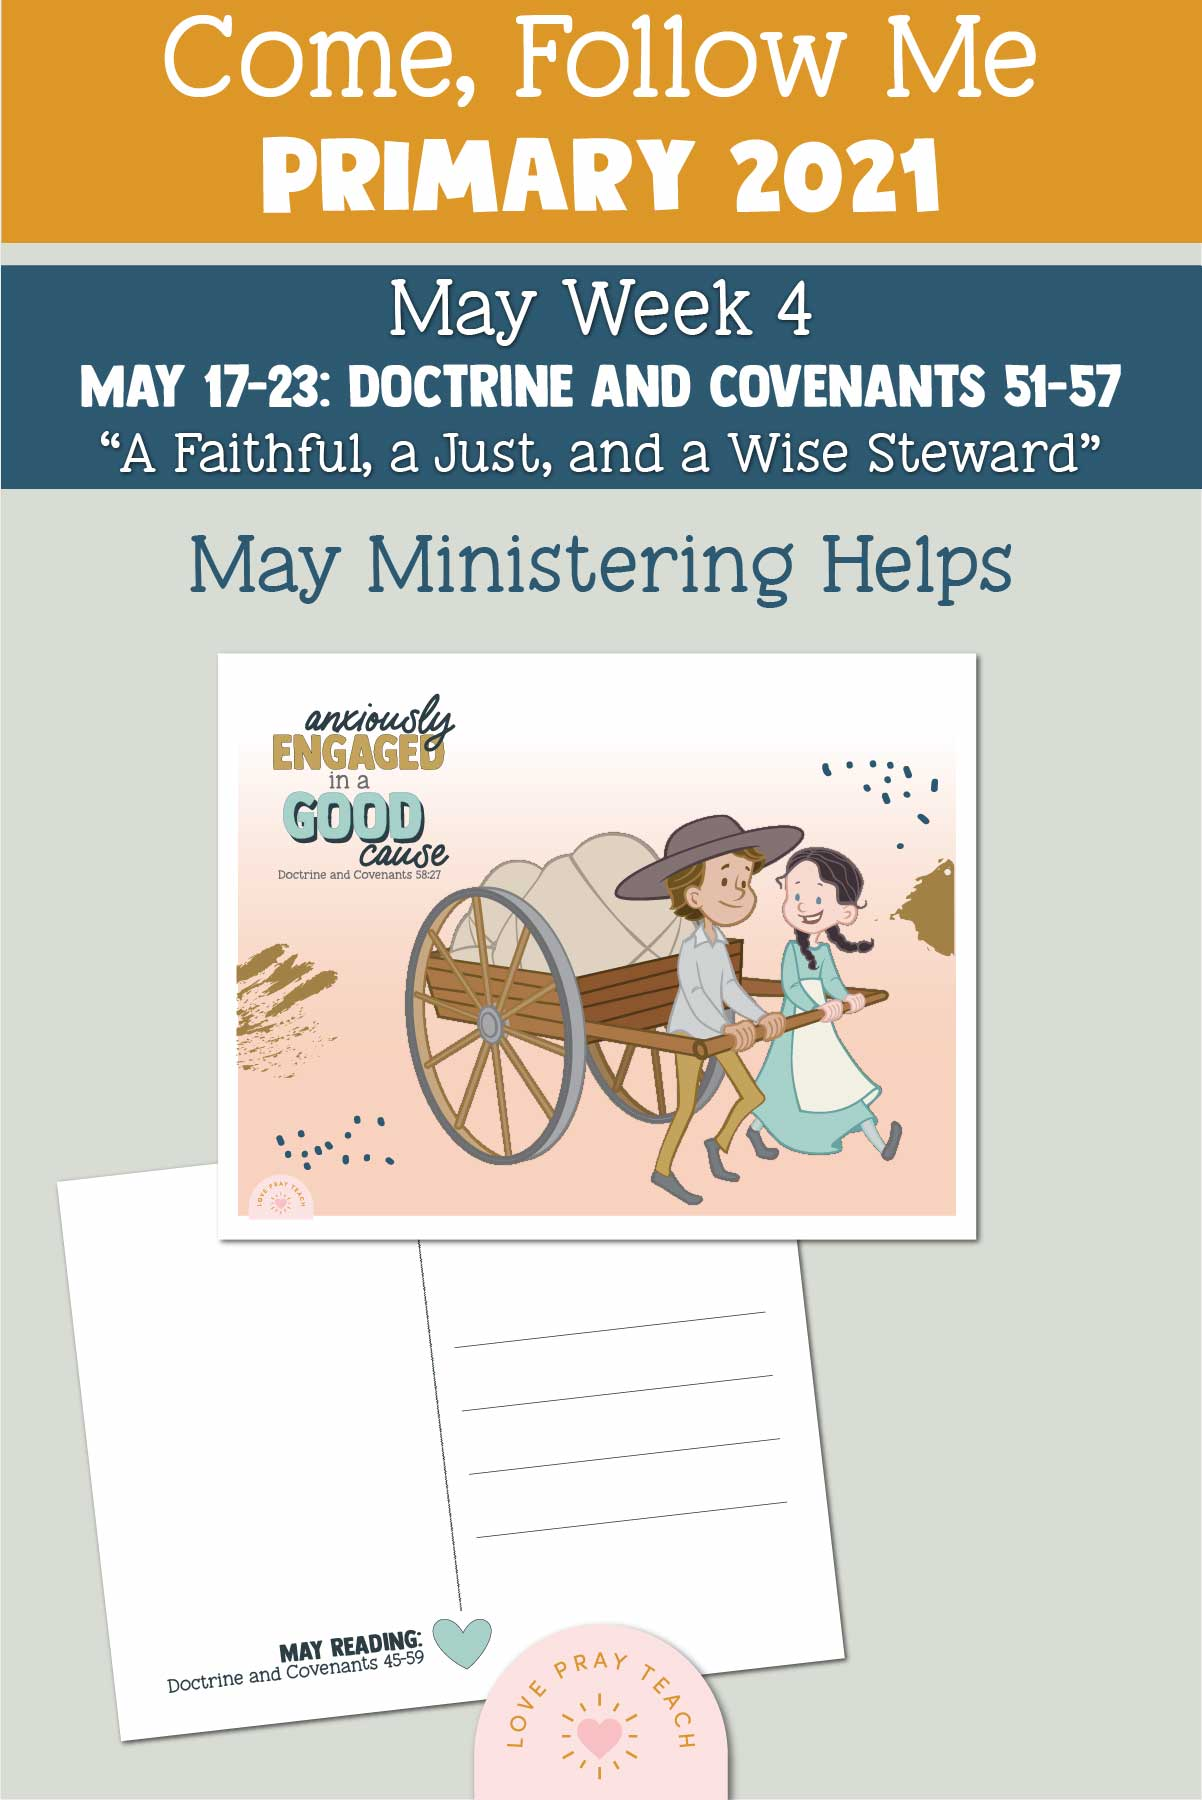 """Come, Follow Me for Primary 2021 May Week 1 Doctrine and Covenants 45 """"The Promises … Shall Be Fulfilled"""" Printable Lesson Materials"""